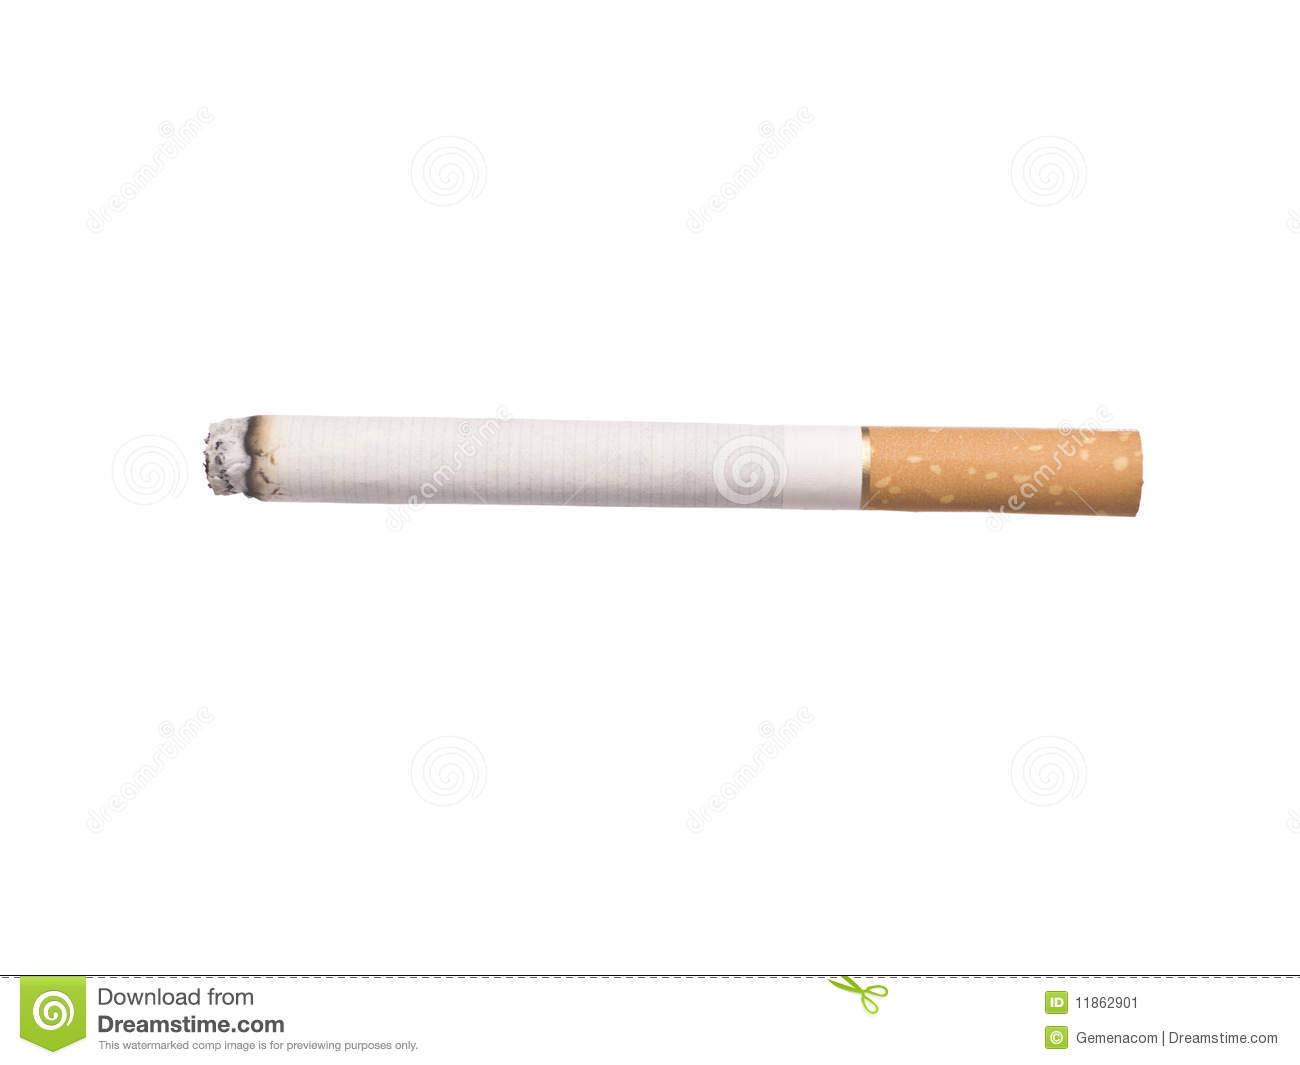 Lit cigarette isolated on a white background.